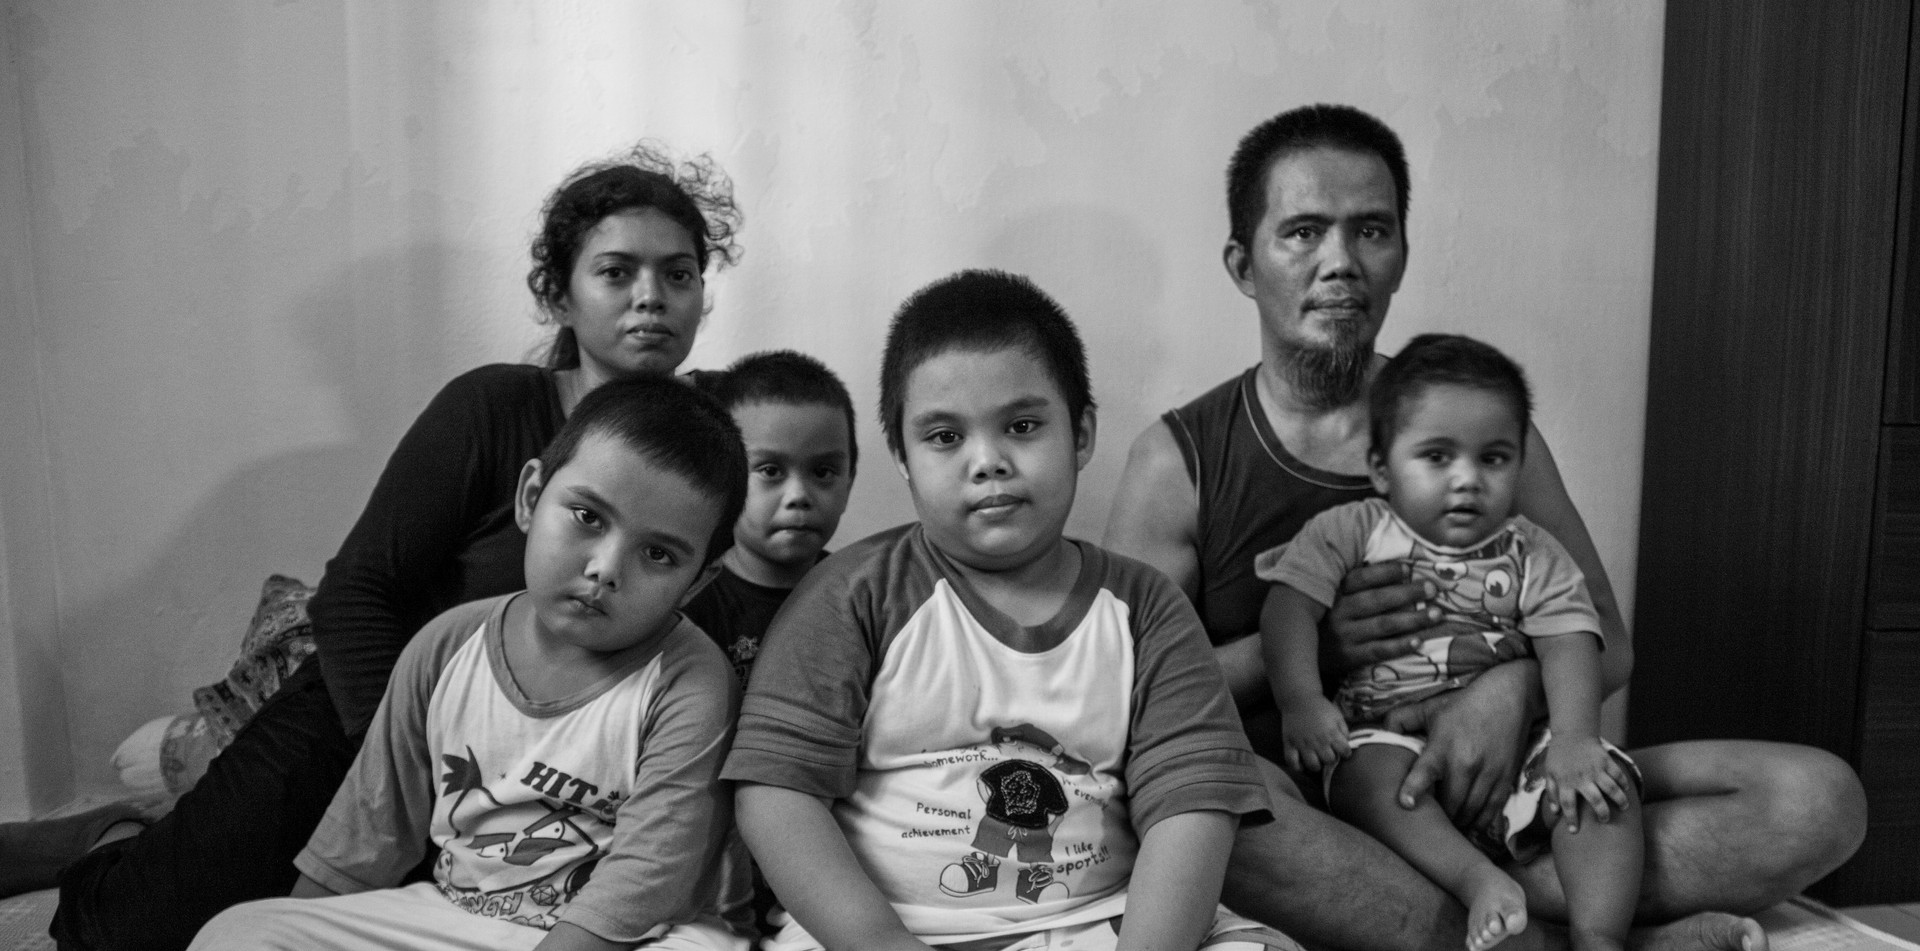 Image of low income families for poverty awareness campaign in Singapore